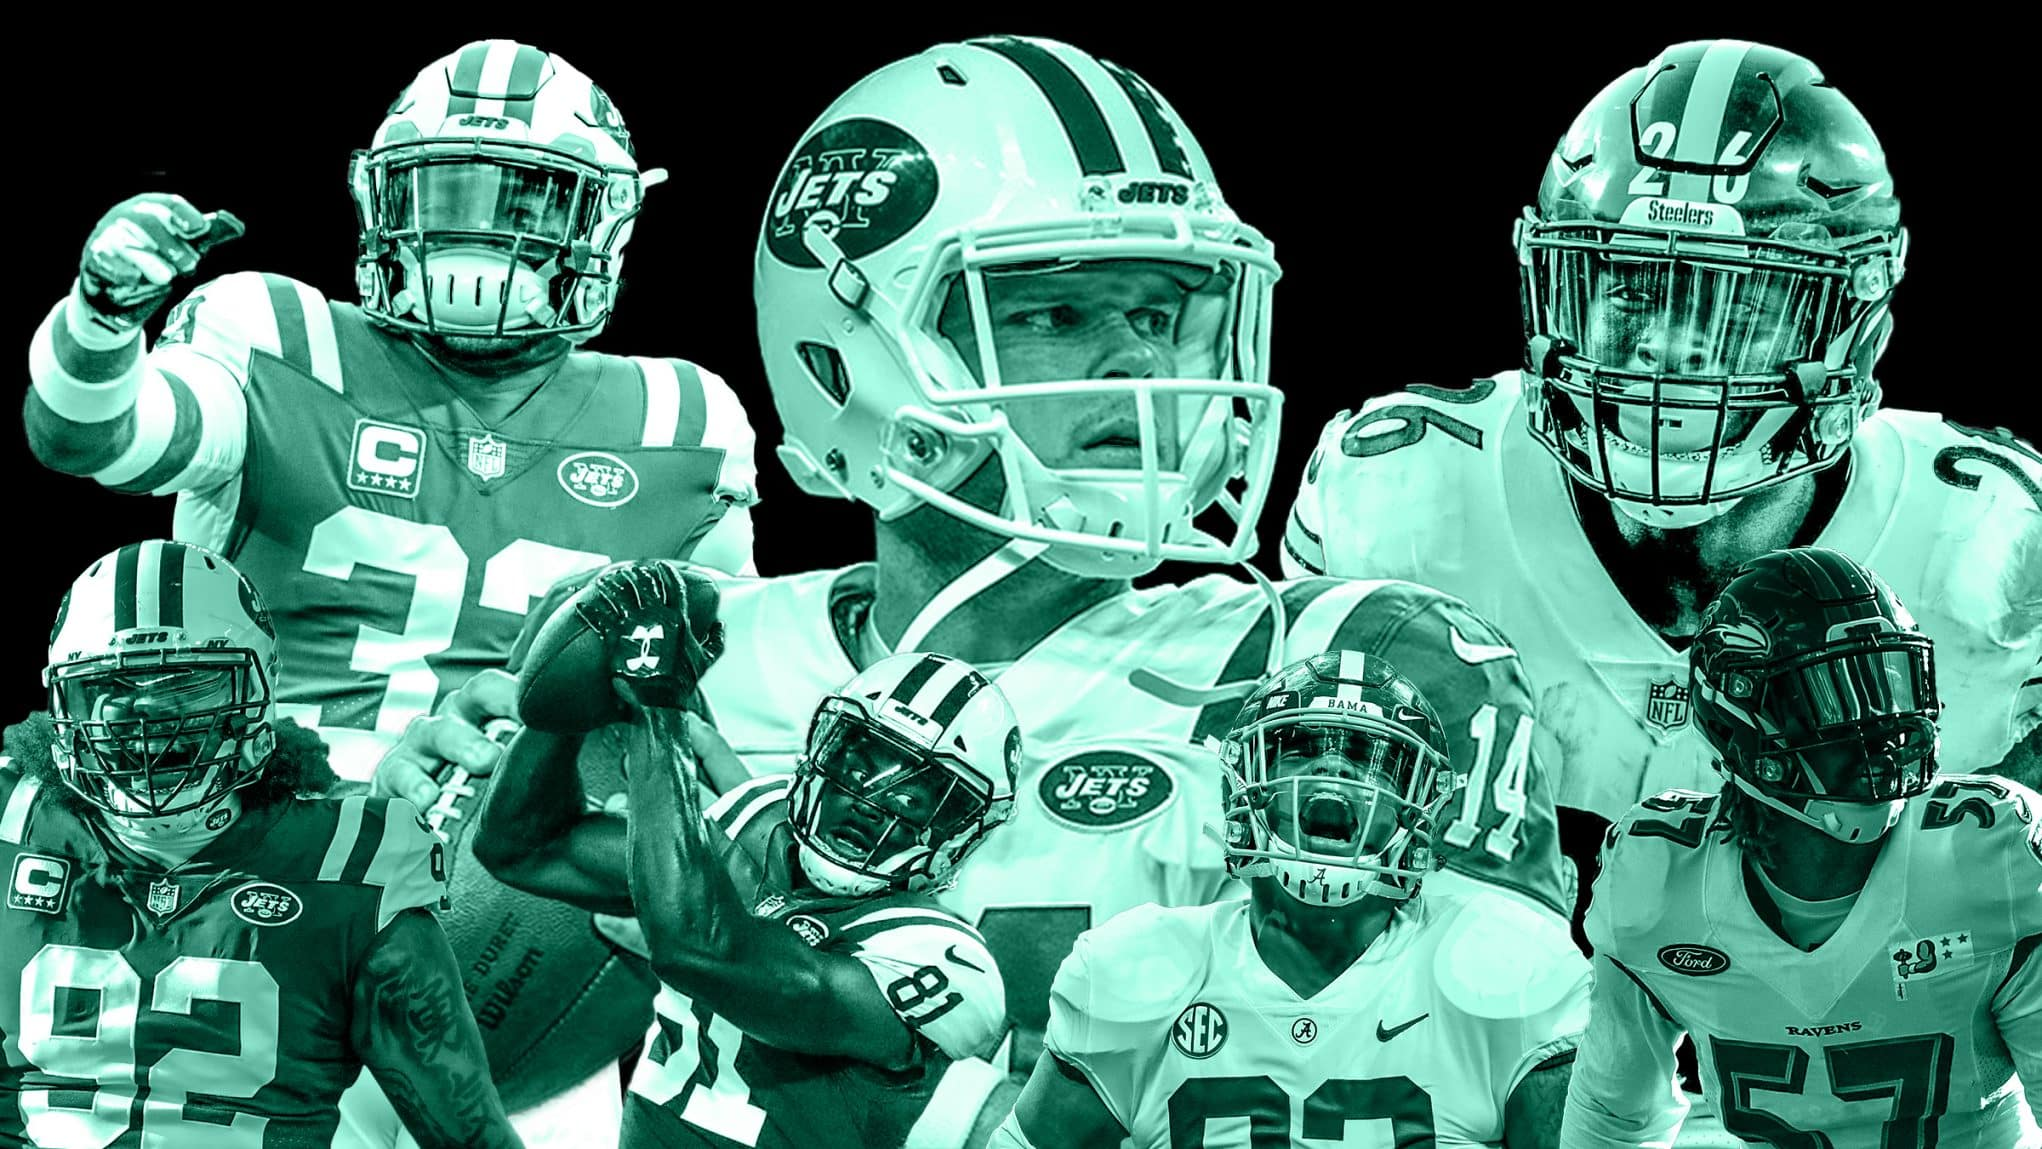 3ee84d5f0 New York Jets projected 53-man depth chart for the 2019 season